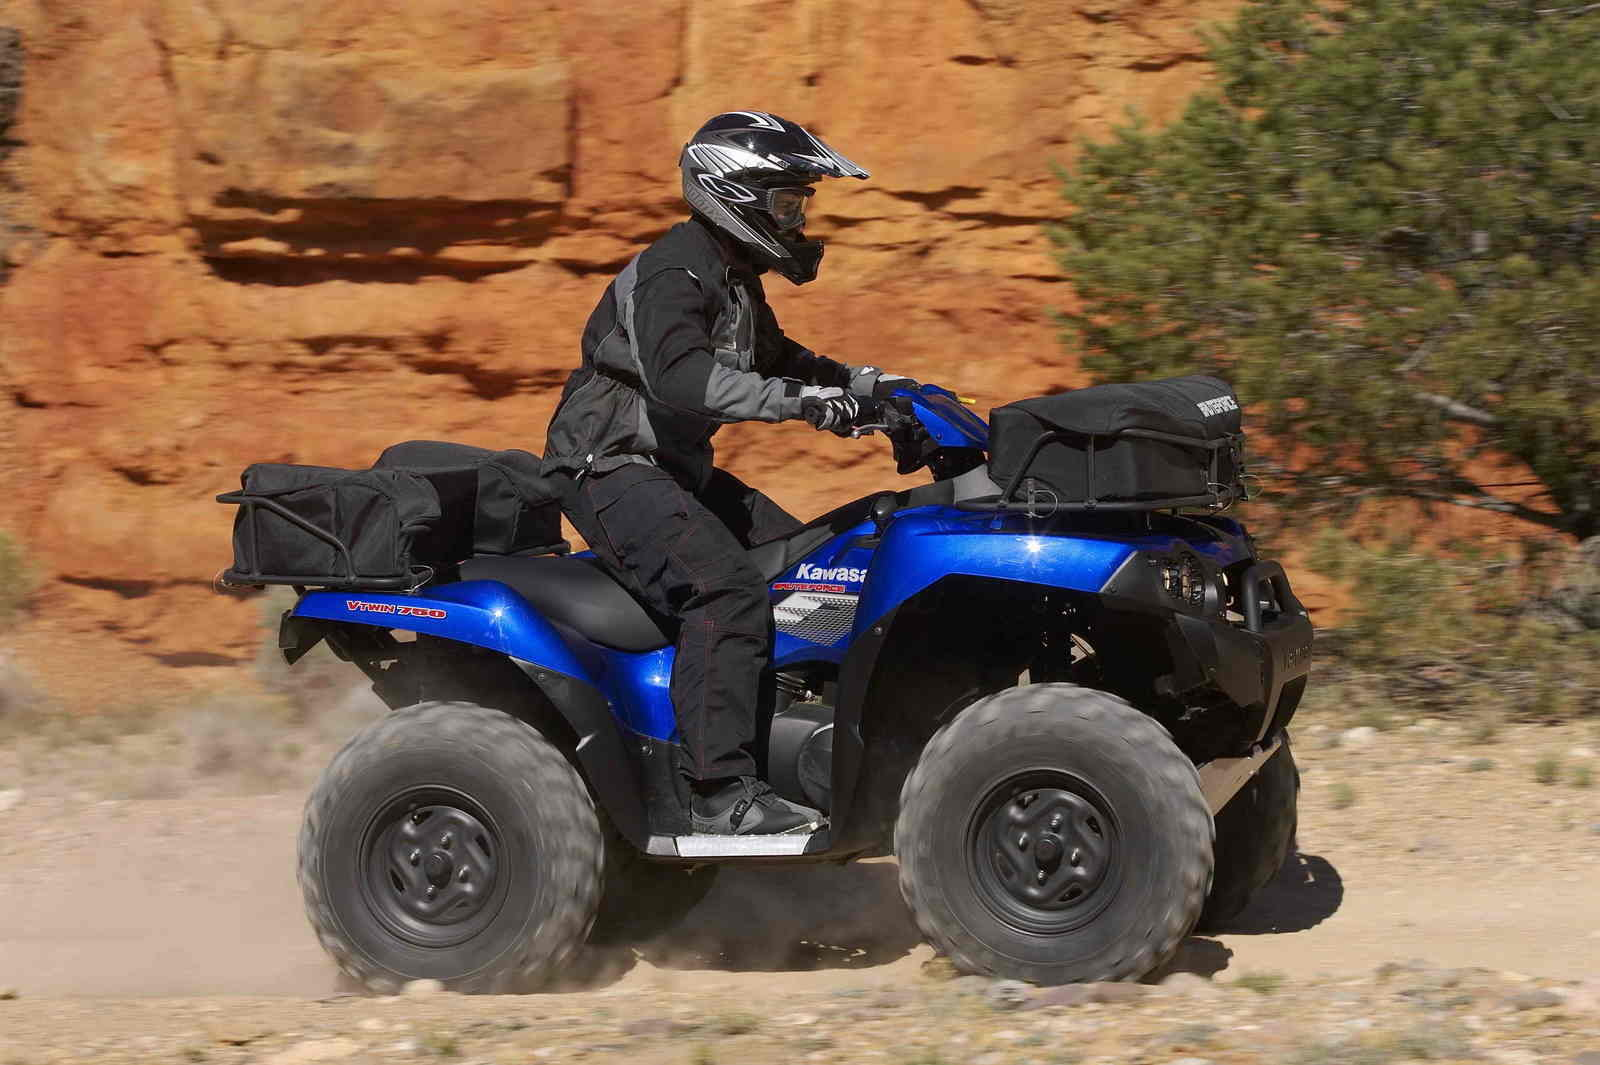 2007 kawasaki brute force 750 4x4i picture 158886 motorcycle review top speed. Black Bedroom Furniture Sets. Home Design Ideas